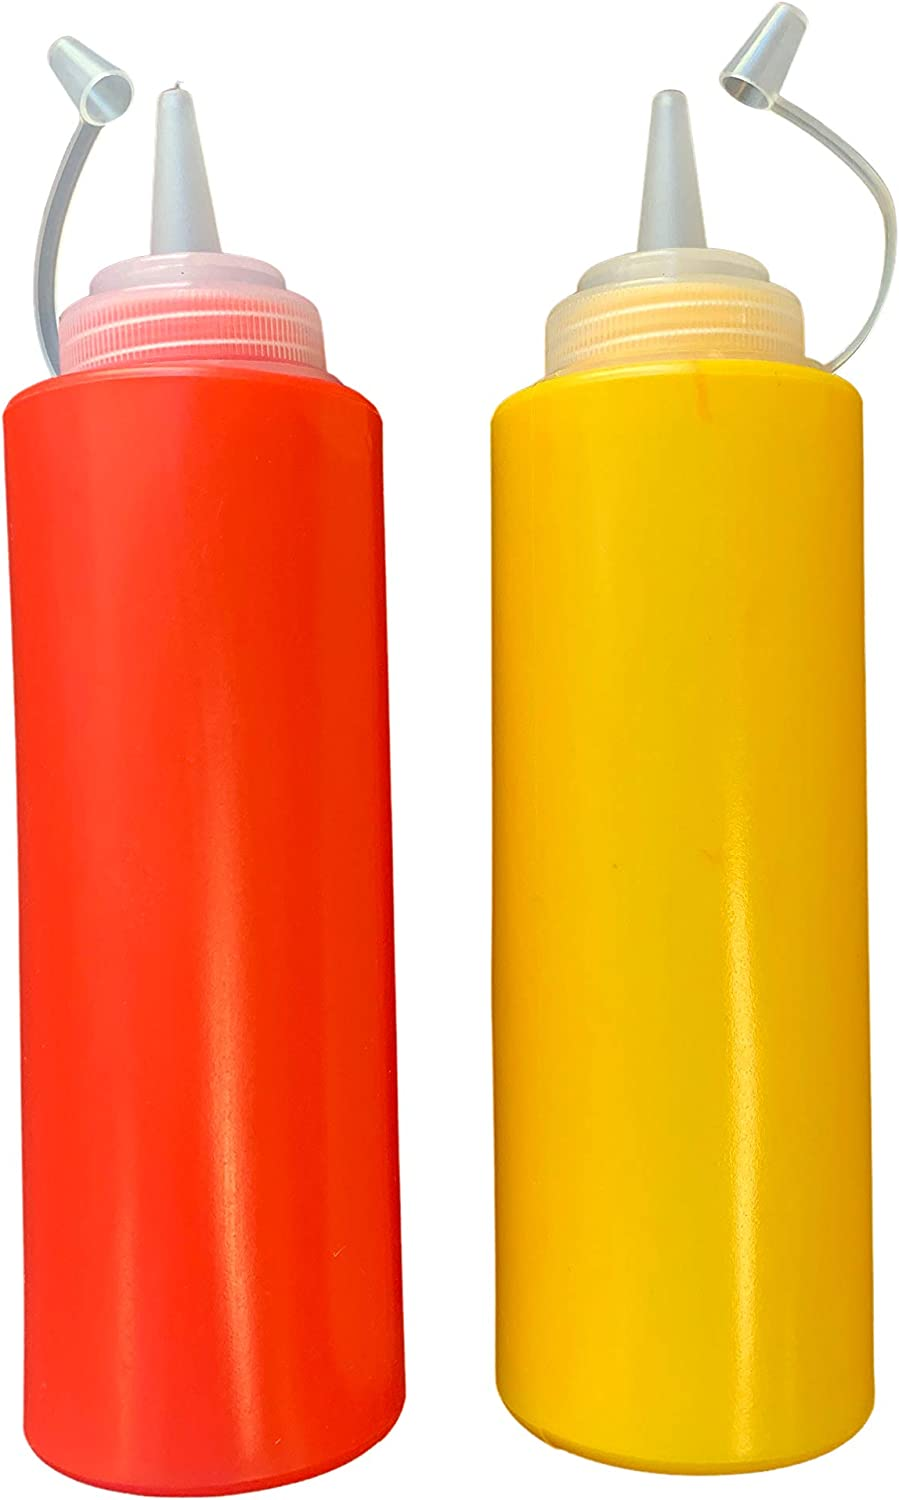 Ketchup and Mustard Squeeze Bottle Dispenser Set 12-Ounce Each For BBQ, Picnics and Home Use